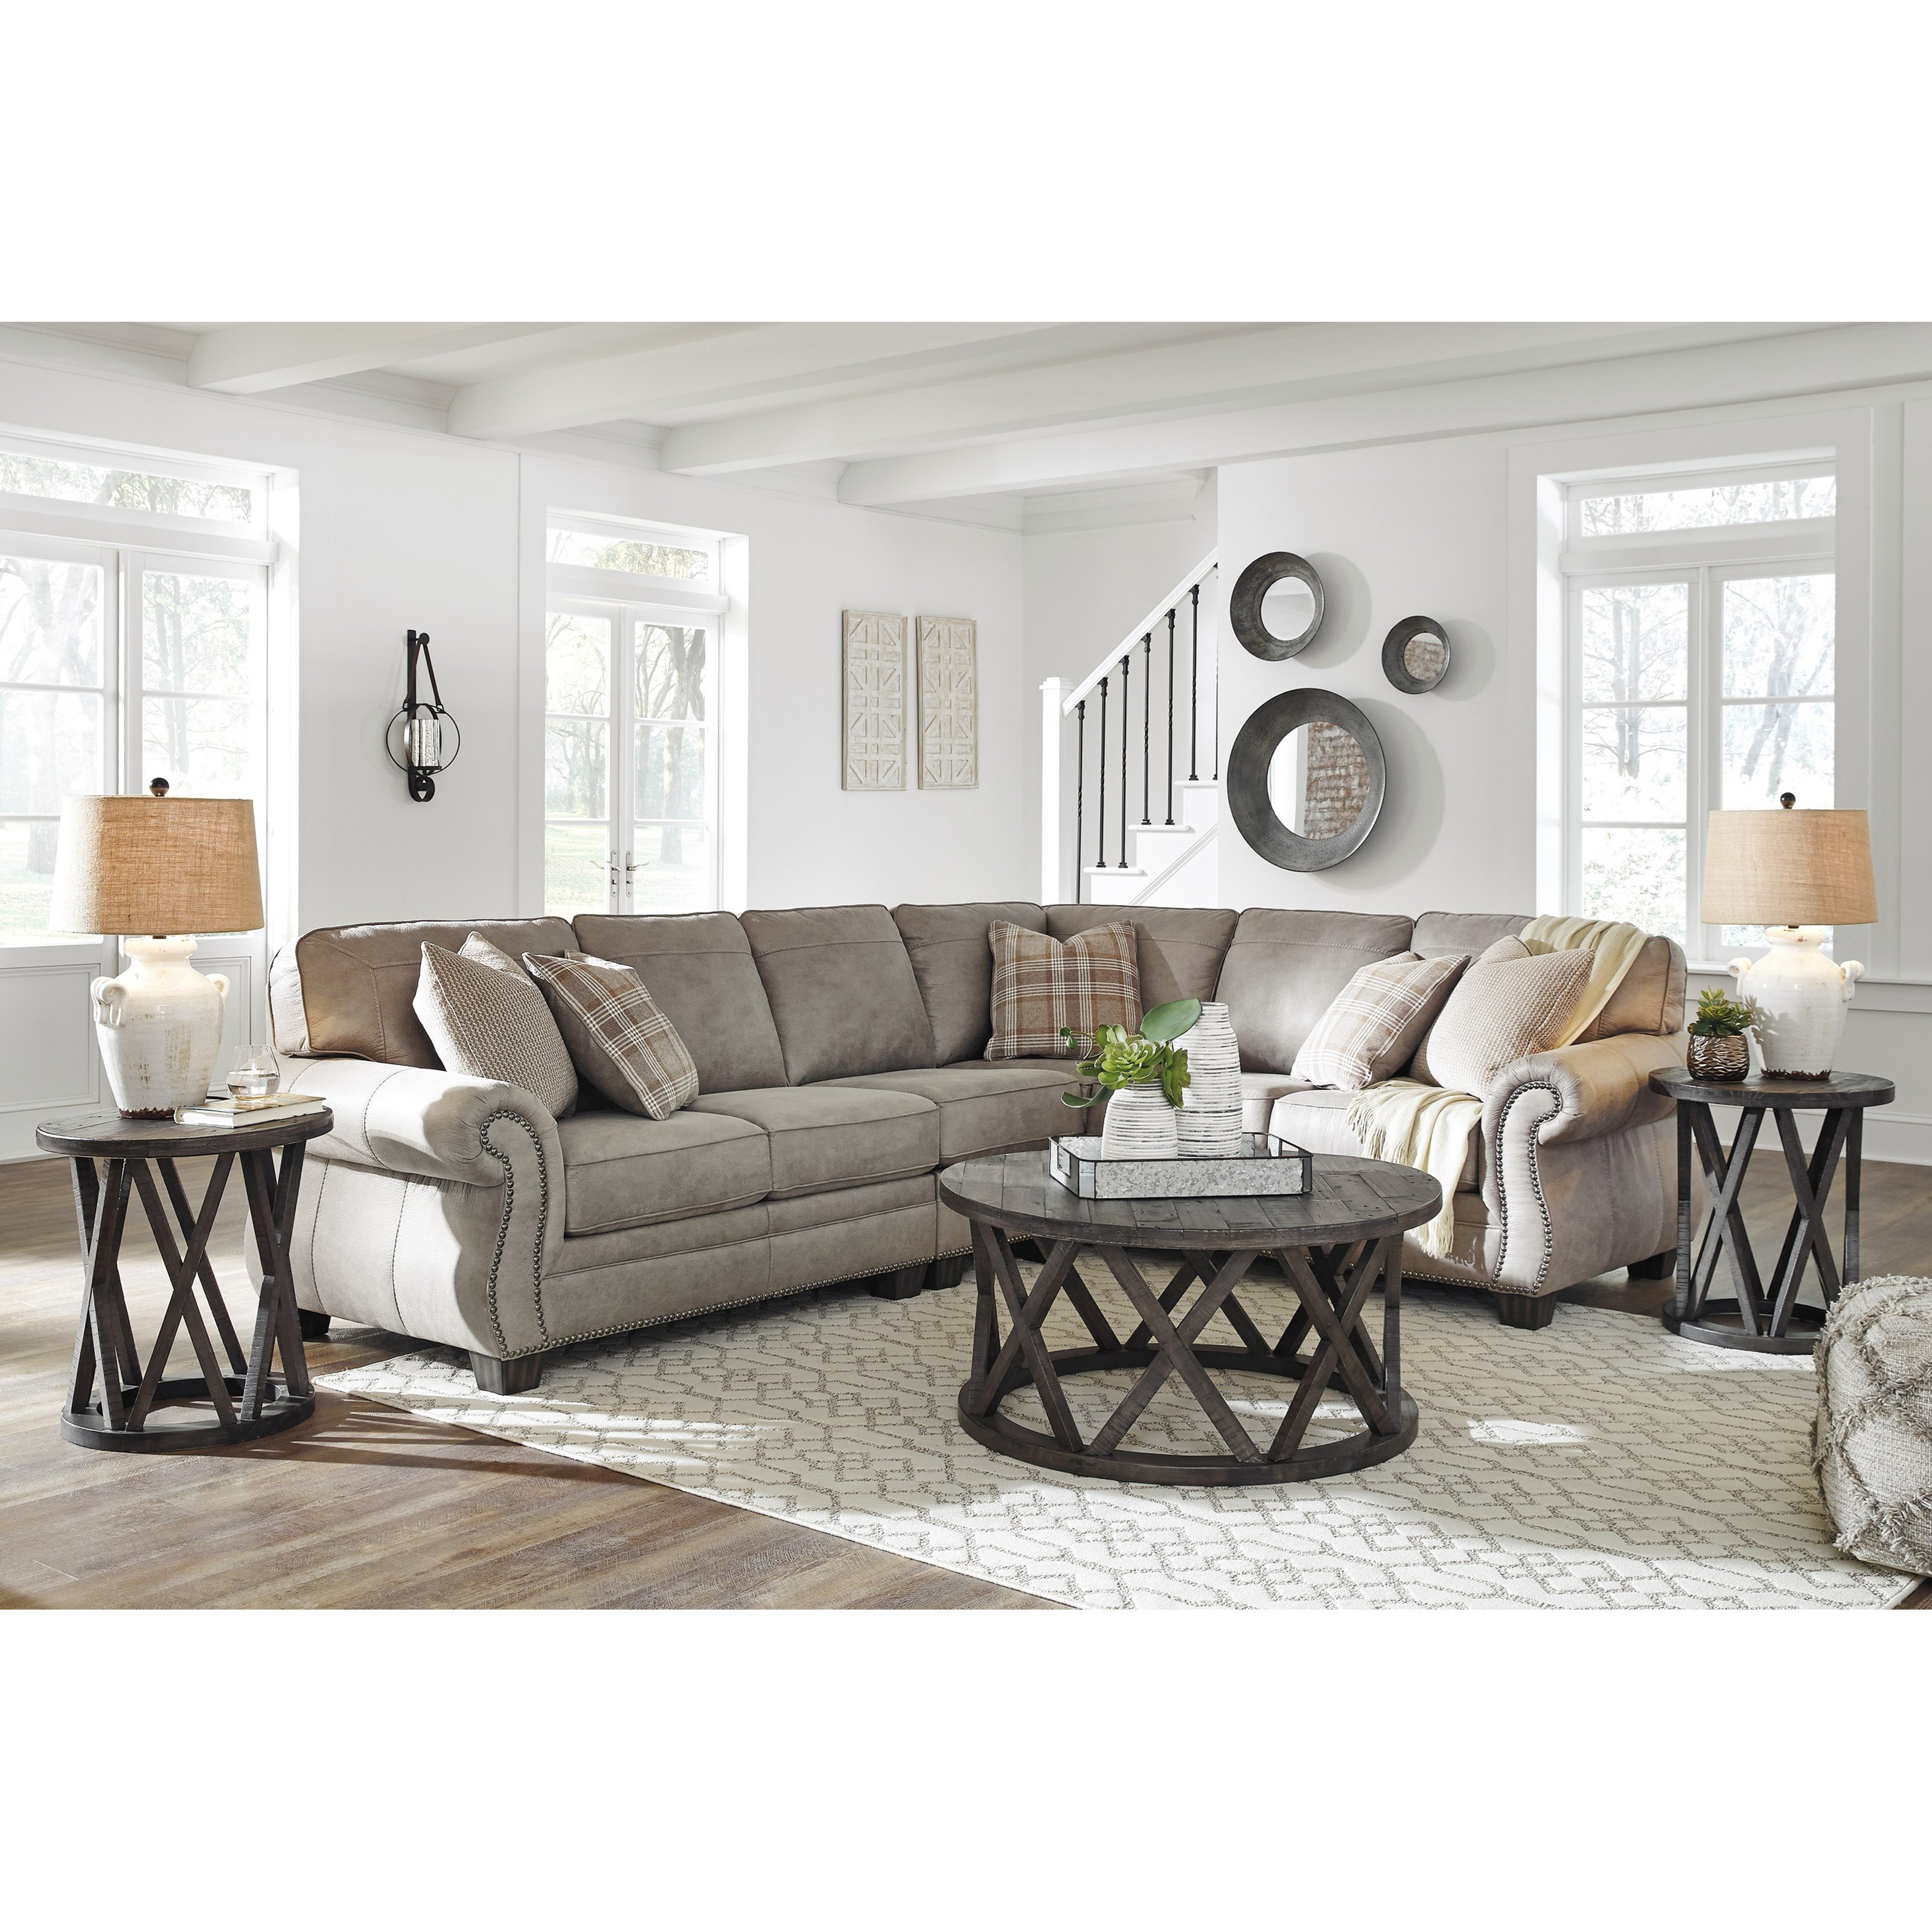 Transitional Style Living Room Furniture: Signature Design By Ashley Olsberg 3 Piece L-Shaped